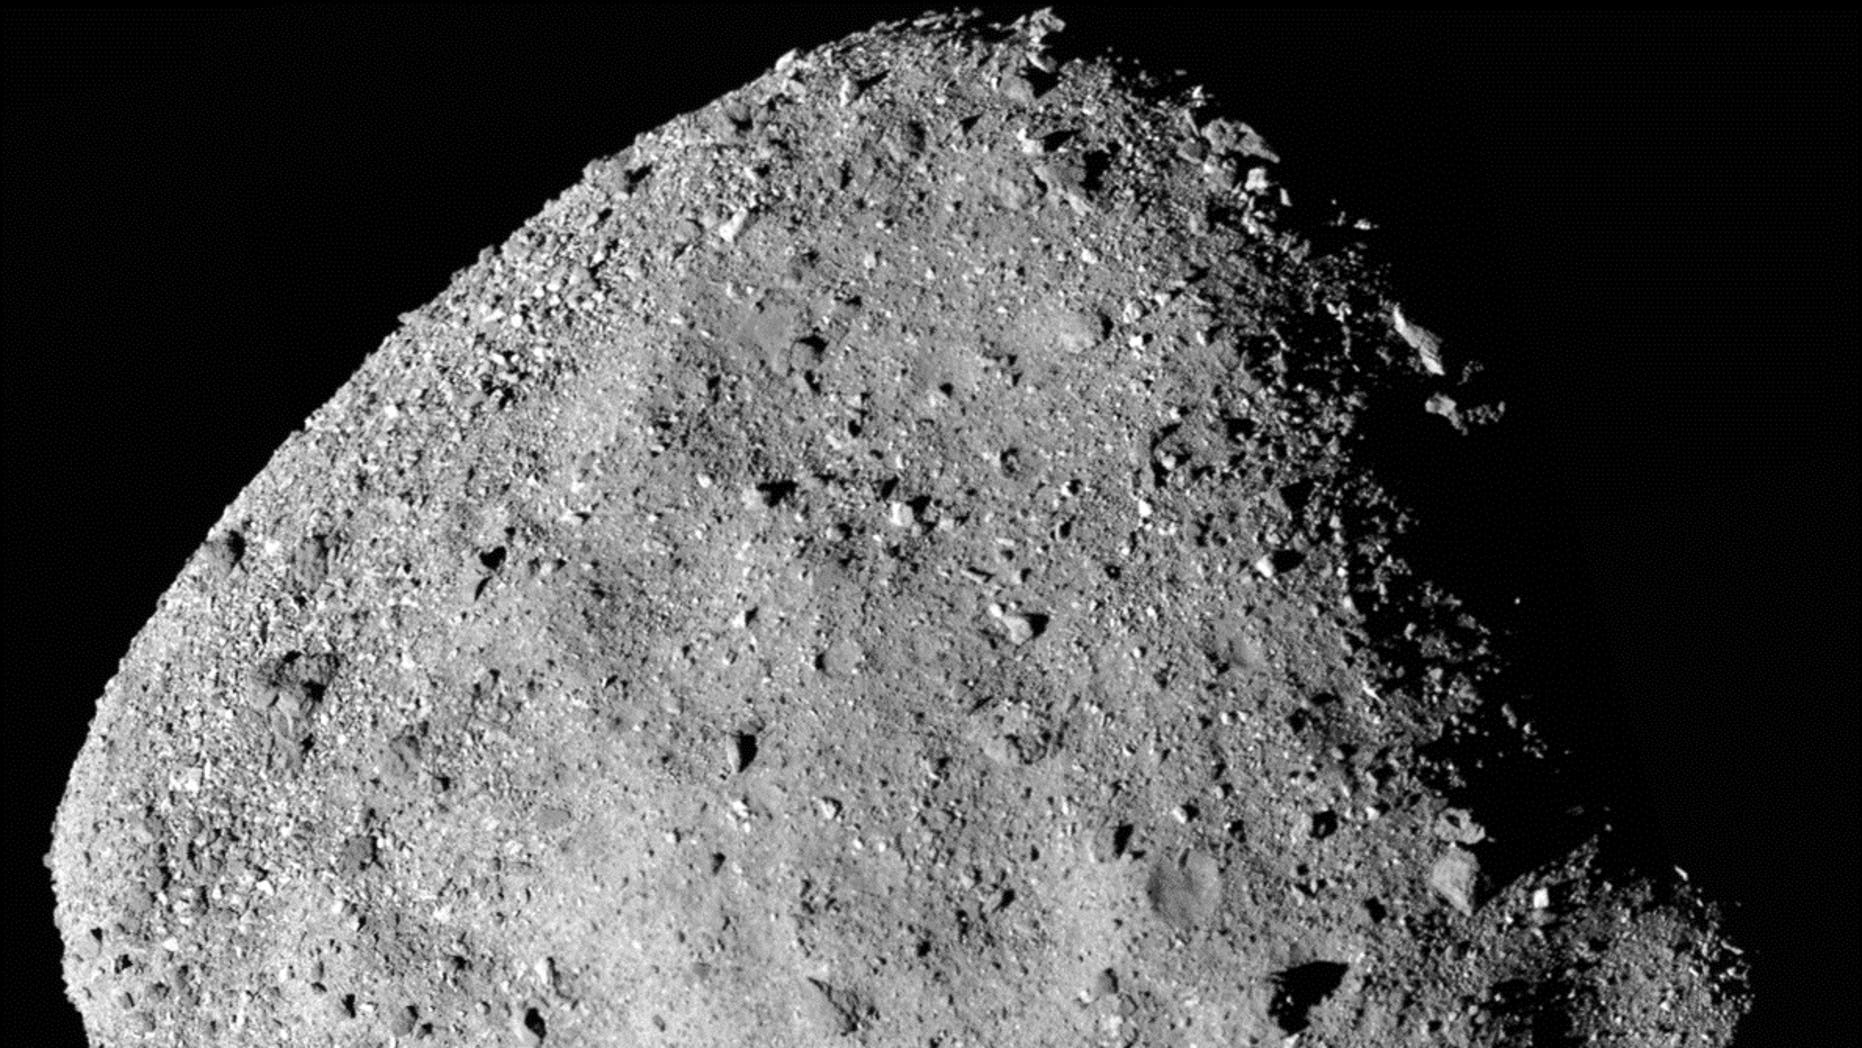 REx discovers ingredients for water on Bennu